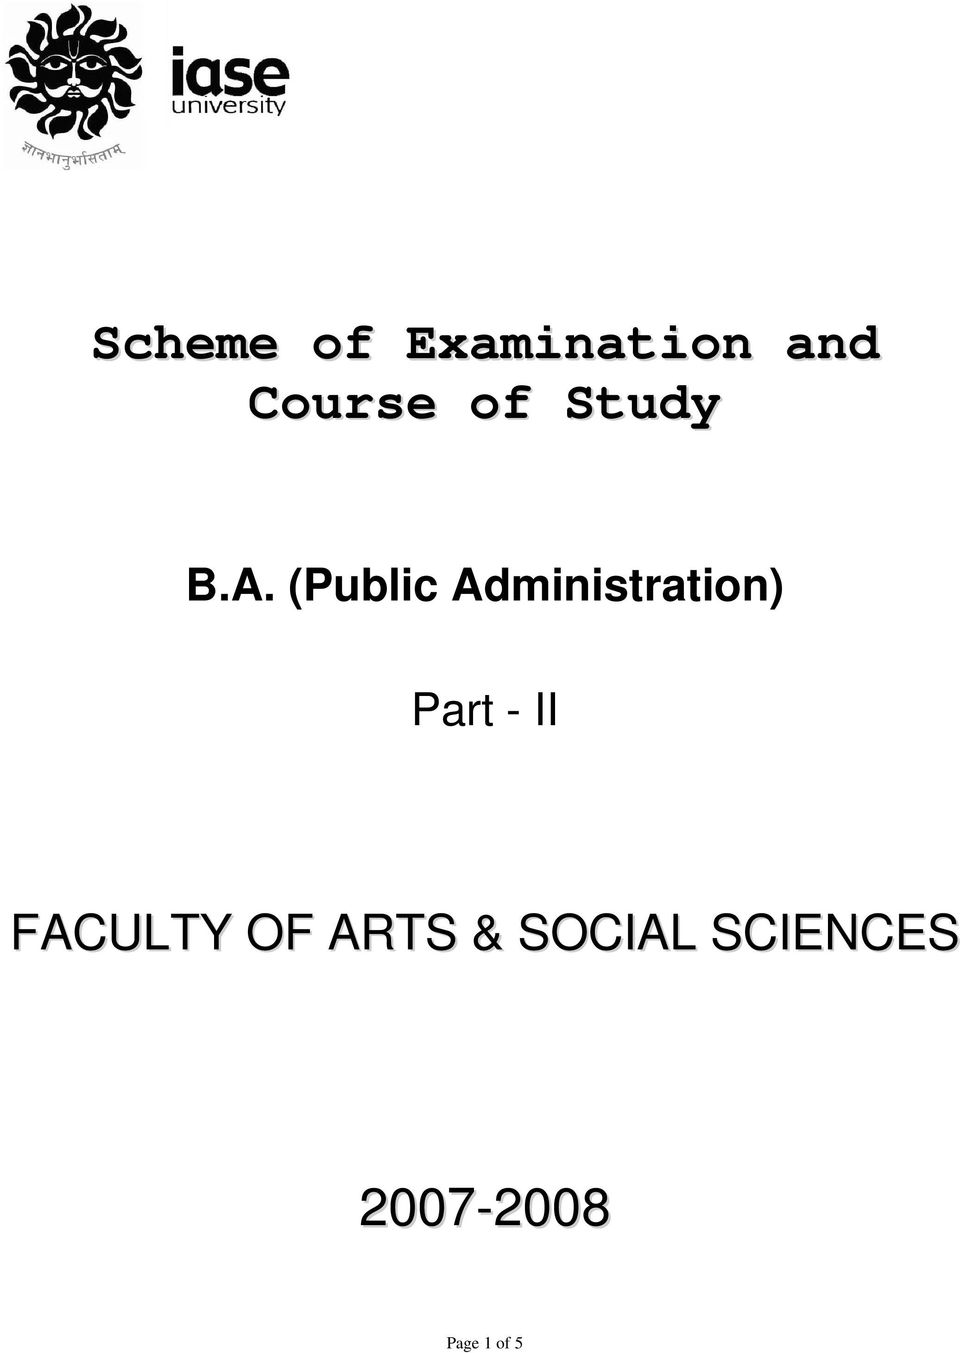 (Public Administration) Part - II